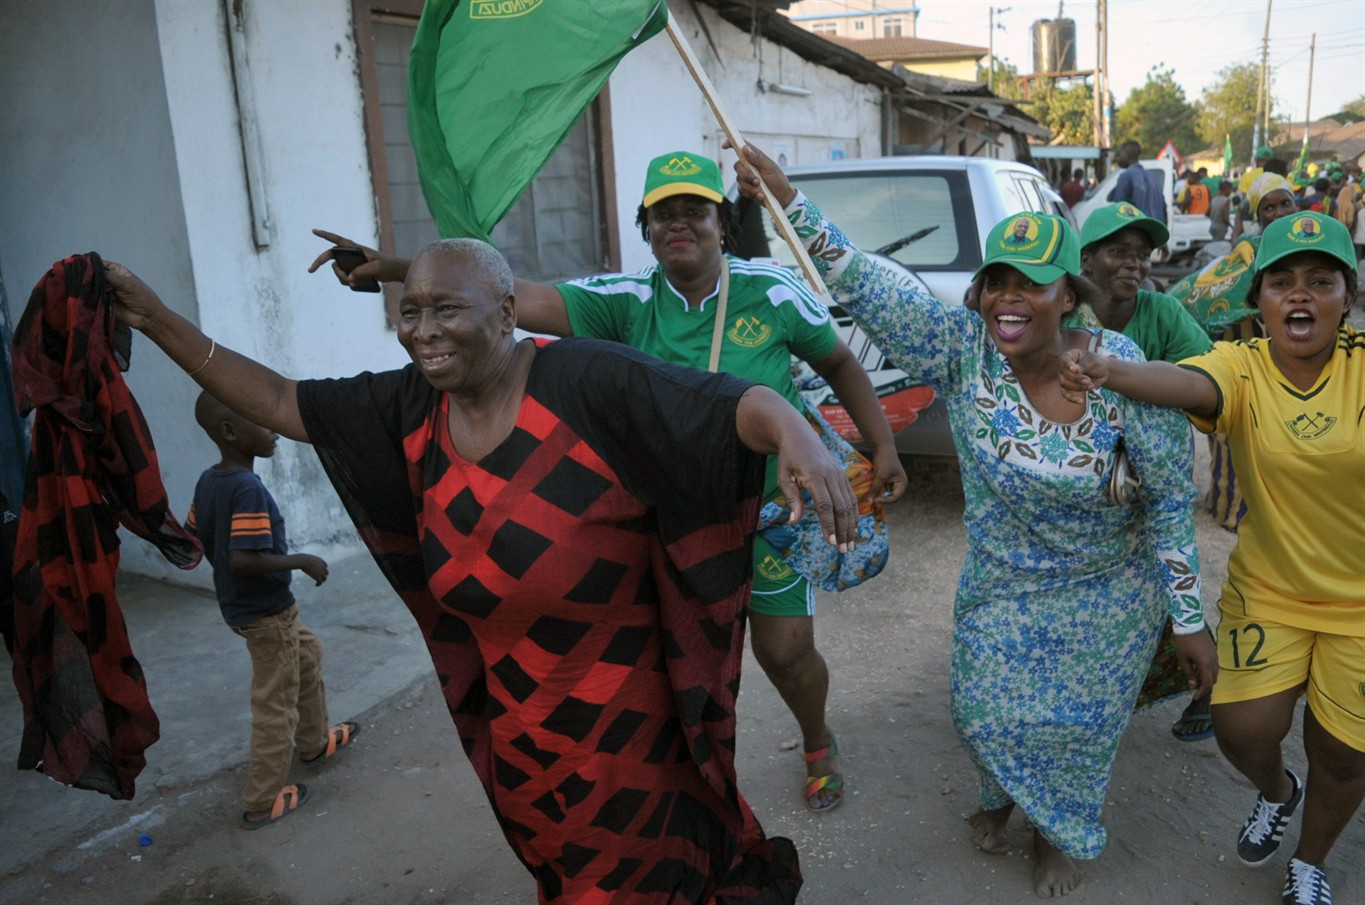 Tanzania S Ruling Party Wins Presidential Election To